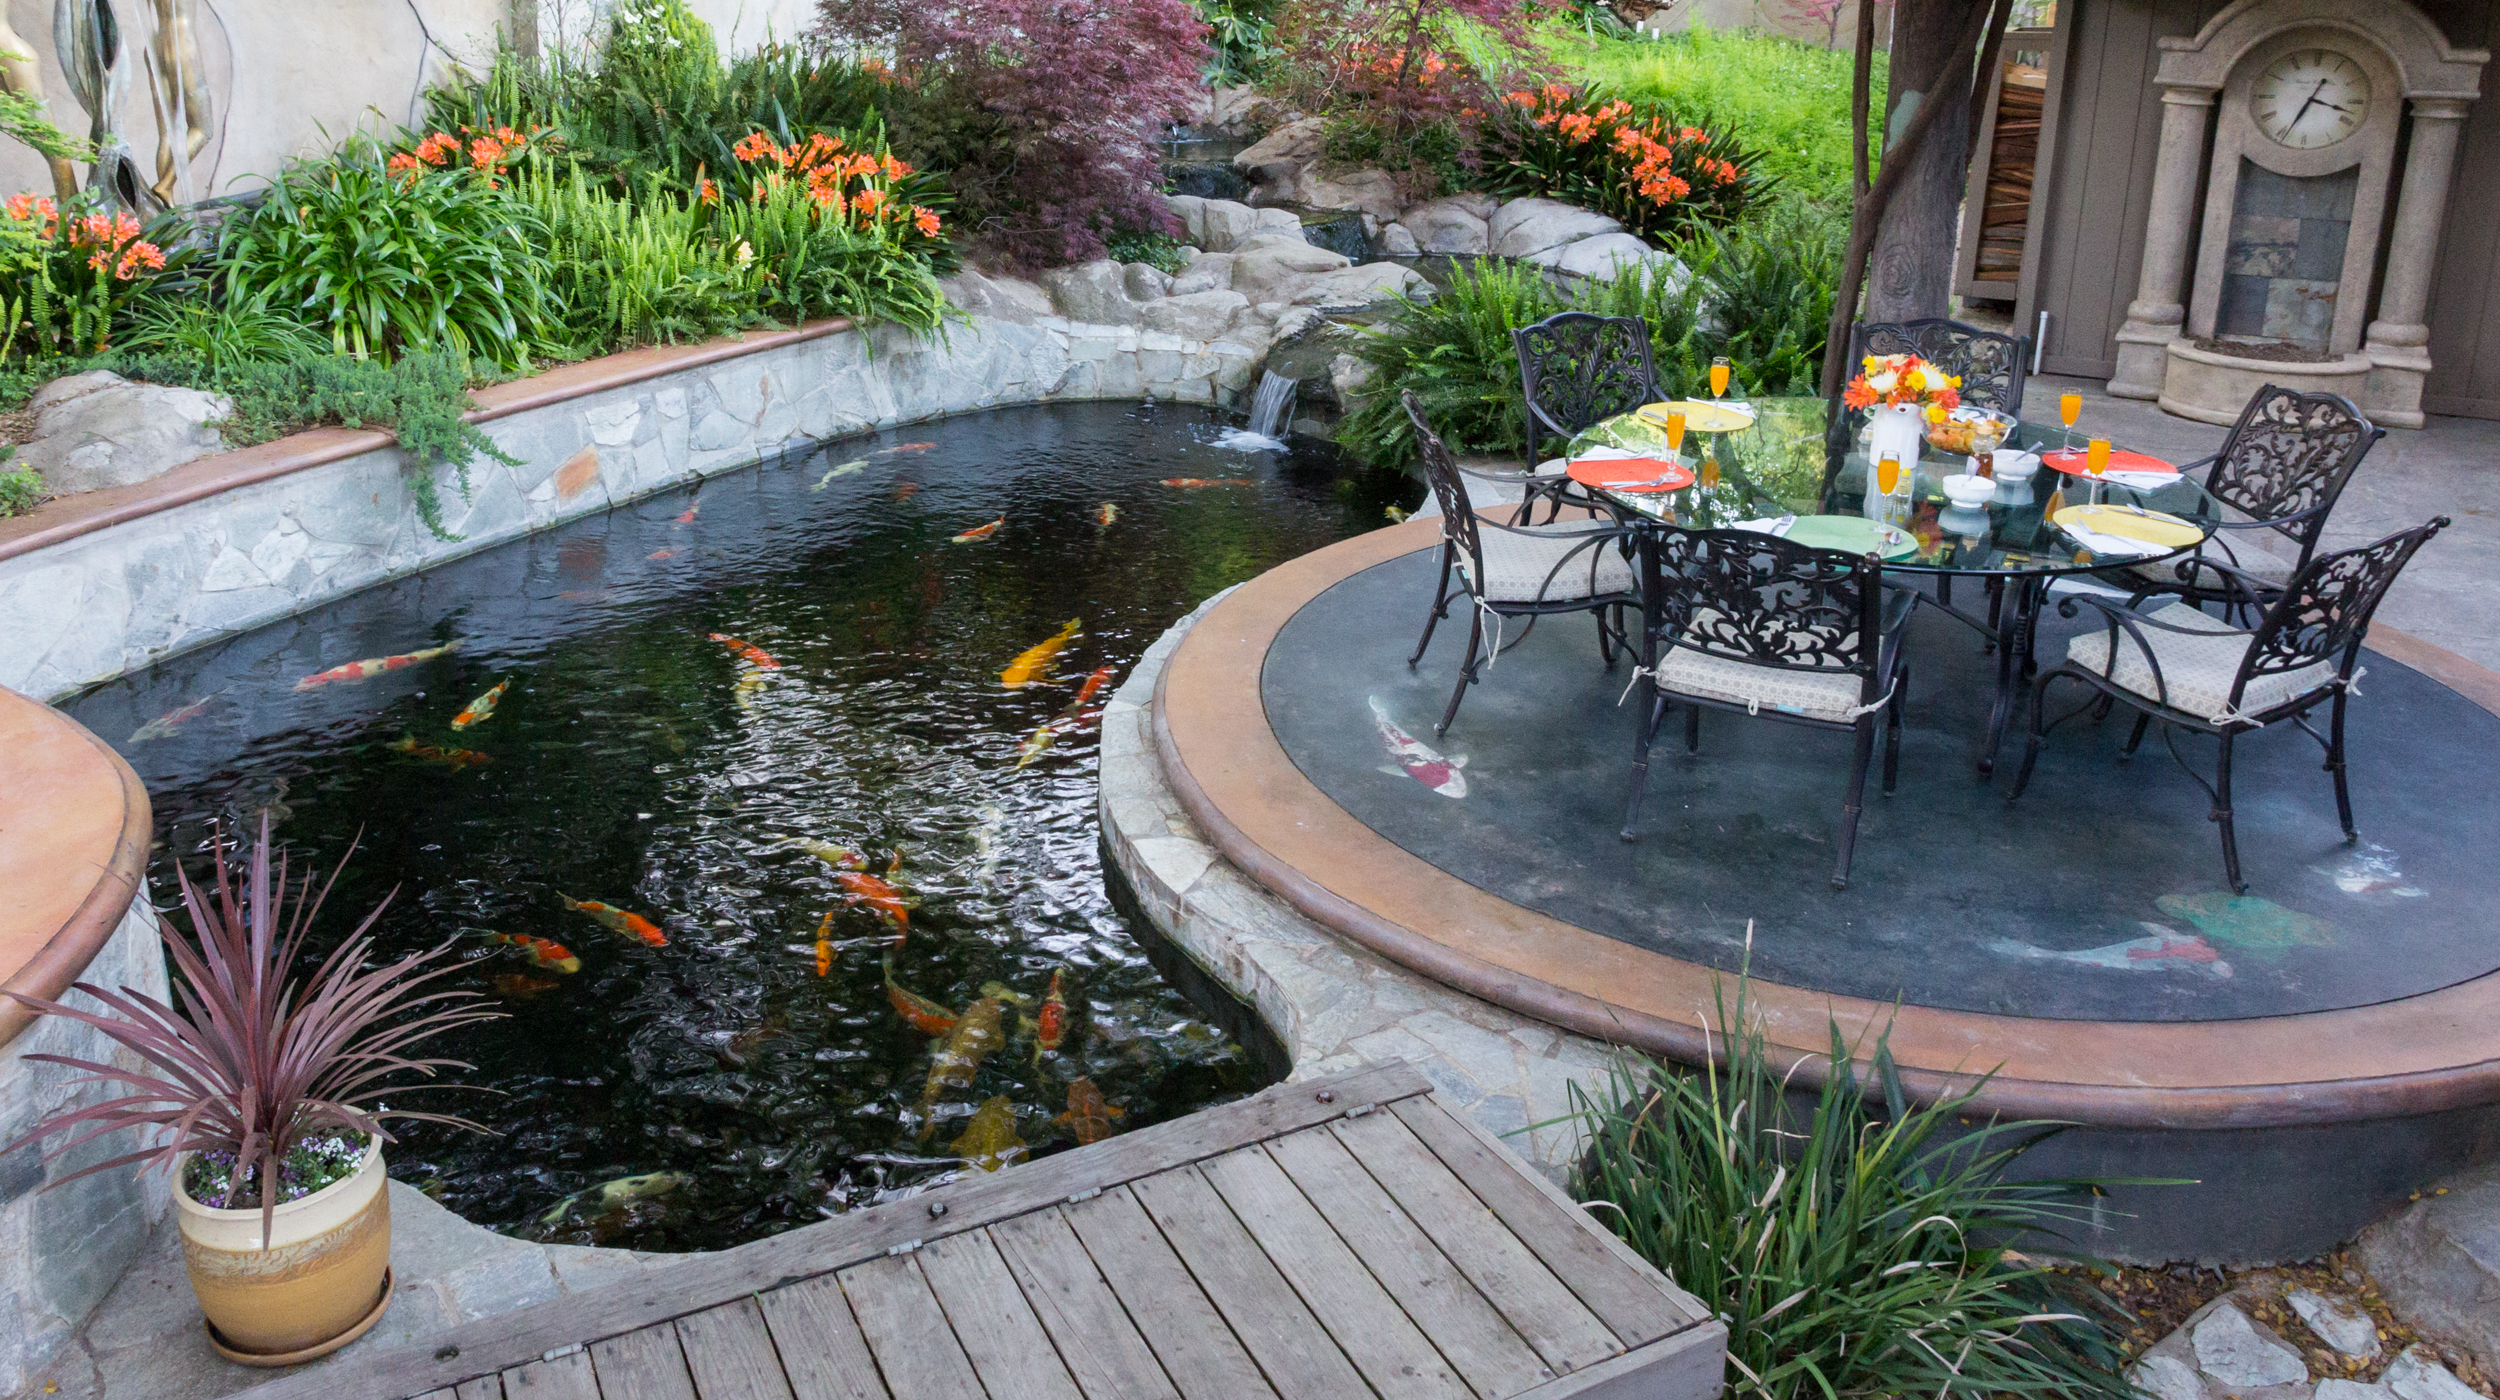 Backyard koi pond sacramento koi for Koi pond volume calculator